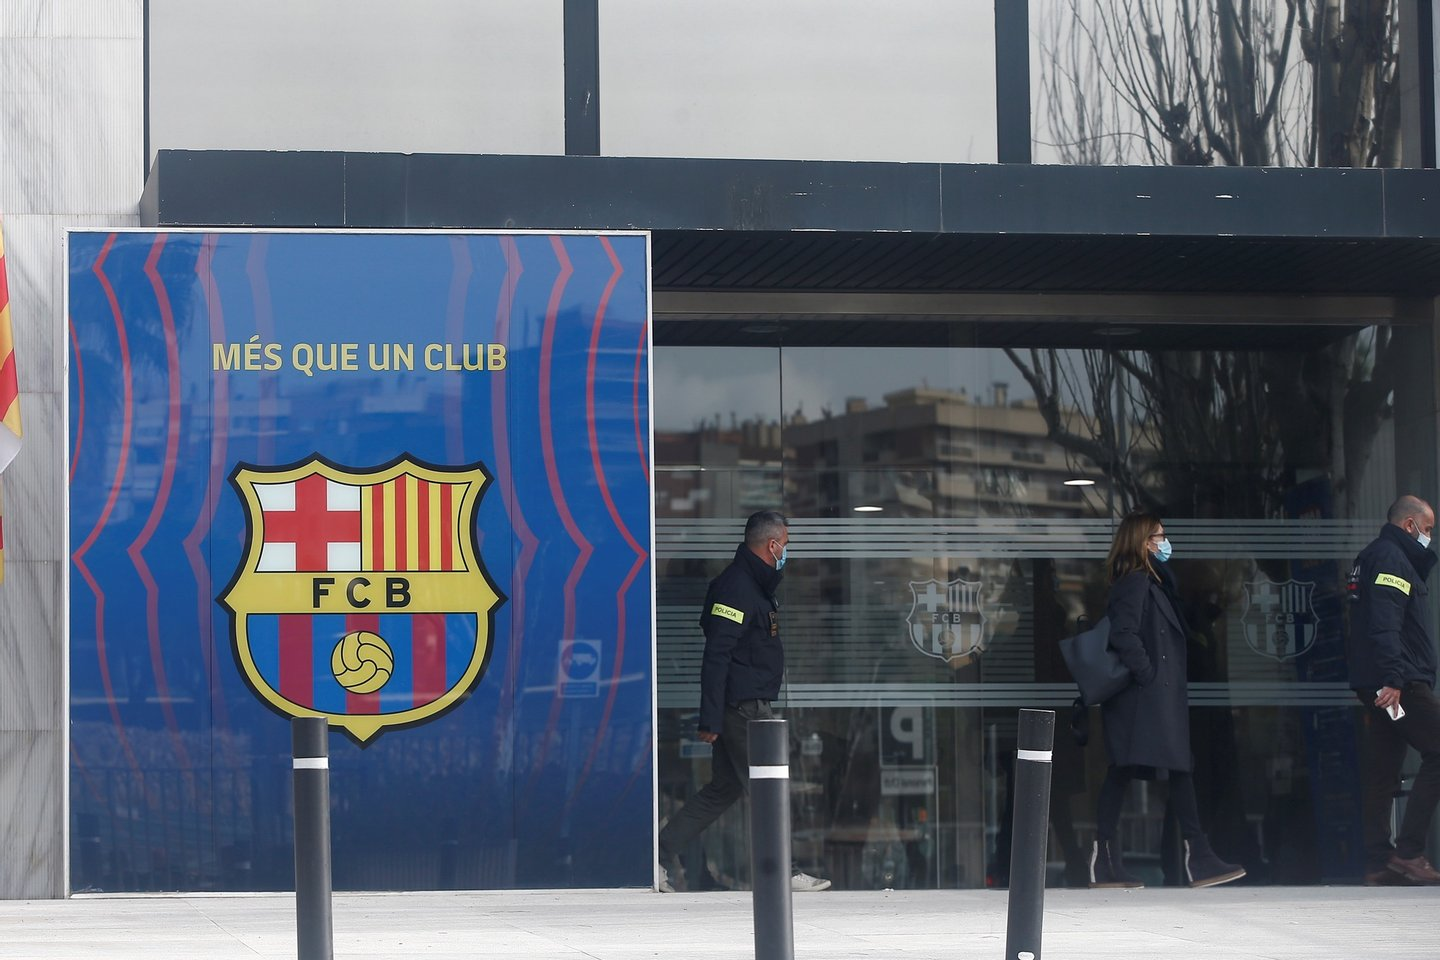 epa09044354 Members of Mossos d'Esquadra regional police's Economic Offences Unit arrives to Spanish soccer club FC Barcelona's headquarters to raid the offices amid the investigation of the so-called 'BarcaGate' case, in Barcelona, Spain, 01 March 2021. Police investigates if a company, hired by the club, carried out a smear campaign against opposite players and groups to then club's board of directors, led by former President Josep Maria Bartomeu, in social media. EPA/Quique Garcia